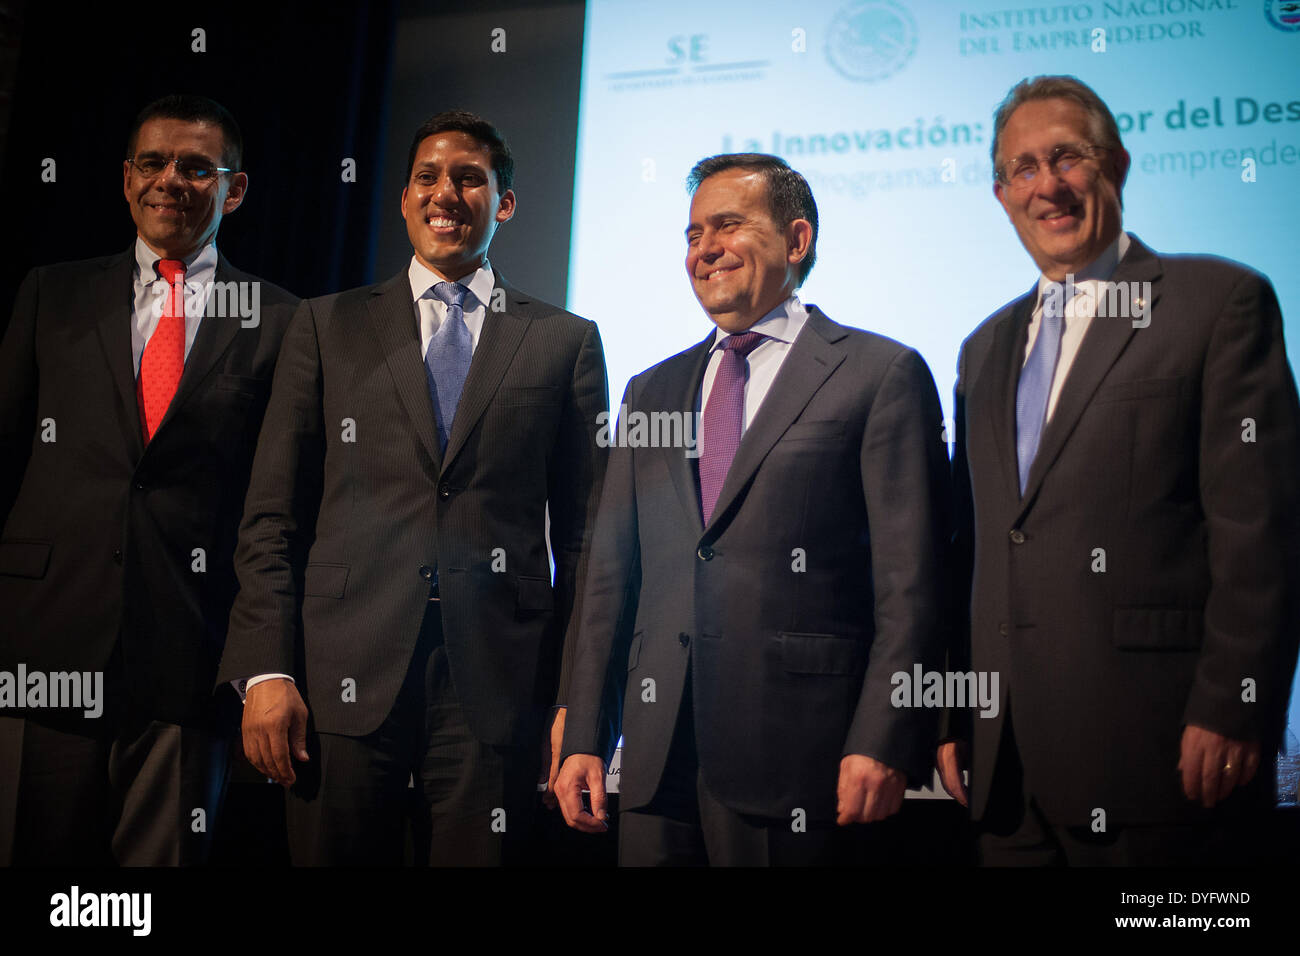 Mexico City, Mexico. 16th Apr, 2014. Administrator of the US Agency for International Development Rajiv Shah (2nd L), US Ambassador to Mexico Anthony Wayne (1st R) and Mexican Finance Minister Ildefonso Guajardo (2nd R) participate in a press conference for the first High Level Meeting of the Global Alliance for the Effective Development Cooperation in Mexico City, capital of Mexico, on April 16, 2014. © Pedro Mera/Xinhua/Alamy Live News - Stock Image